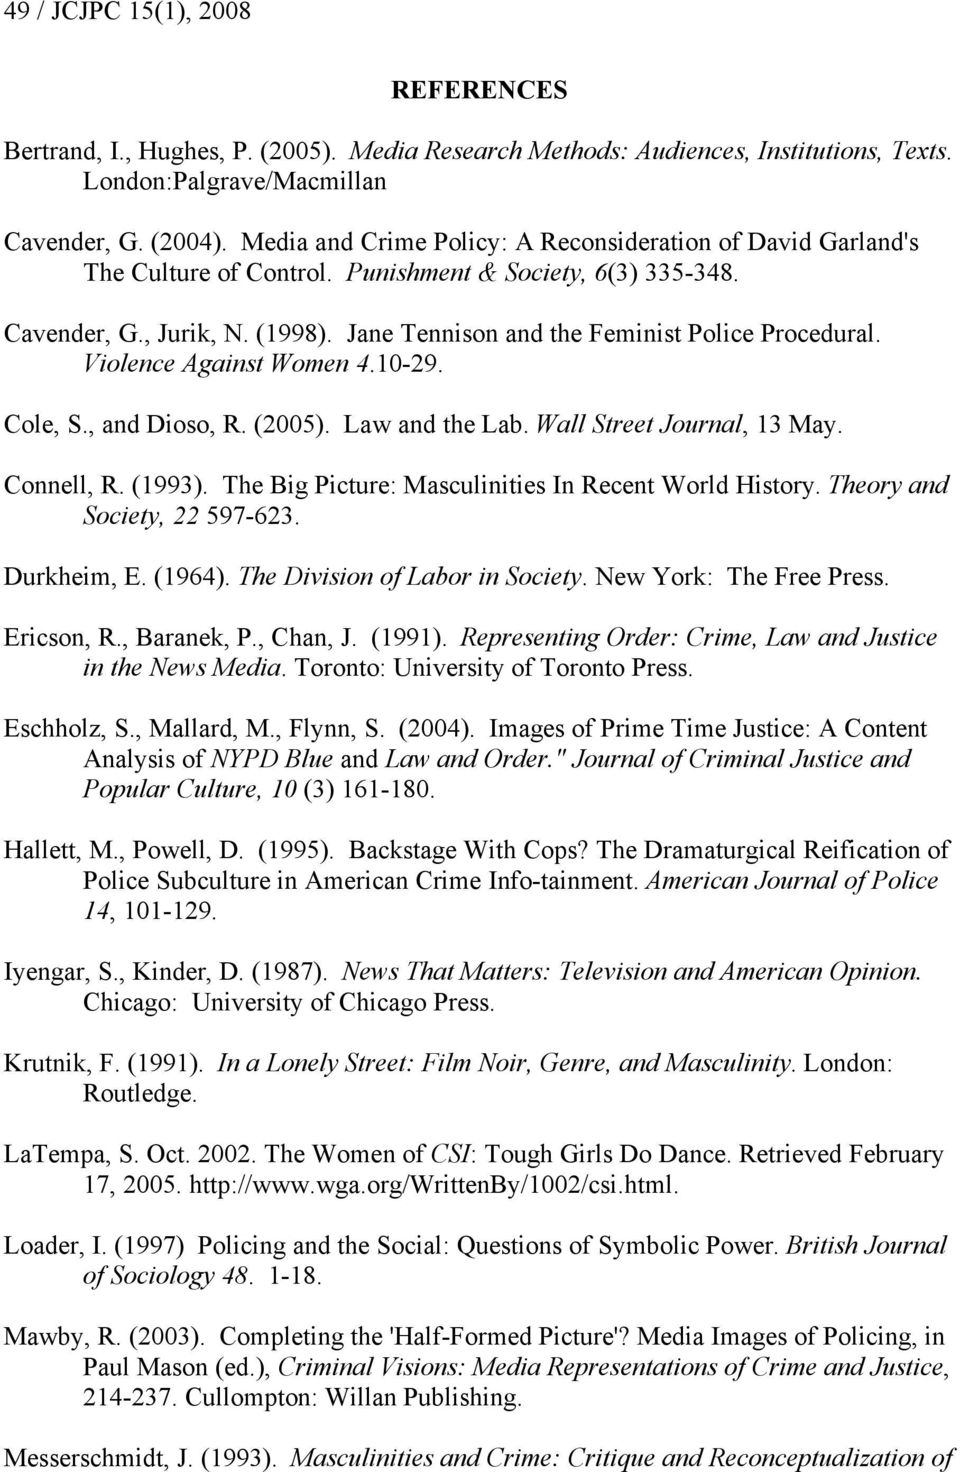 Jane Tennison and the Feminist Police Procedural. Violence Against Women 4.10-29. Cole, S., and Dioso, R. (2005). Law and the Lab. Wall Street Journal, 13 May. Connell, R. (1993).